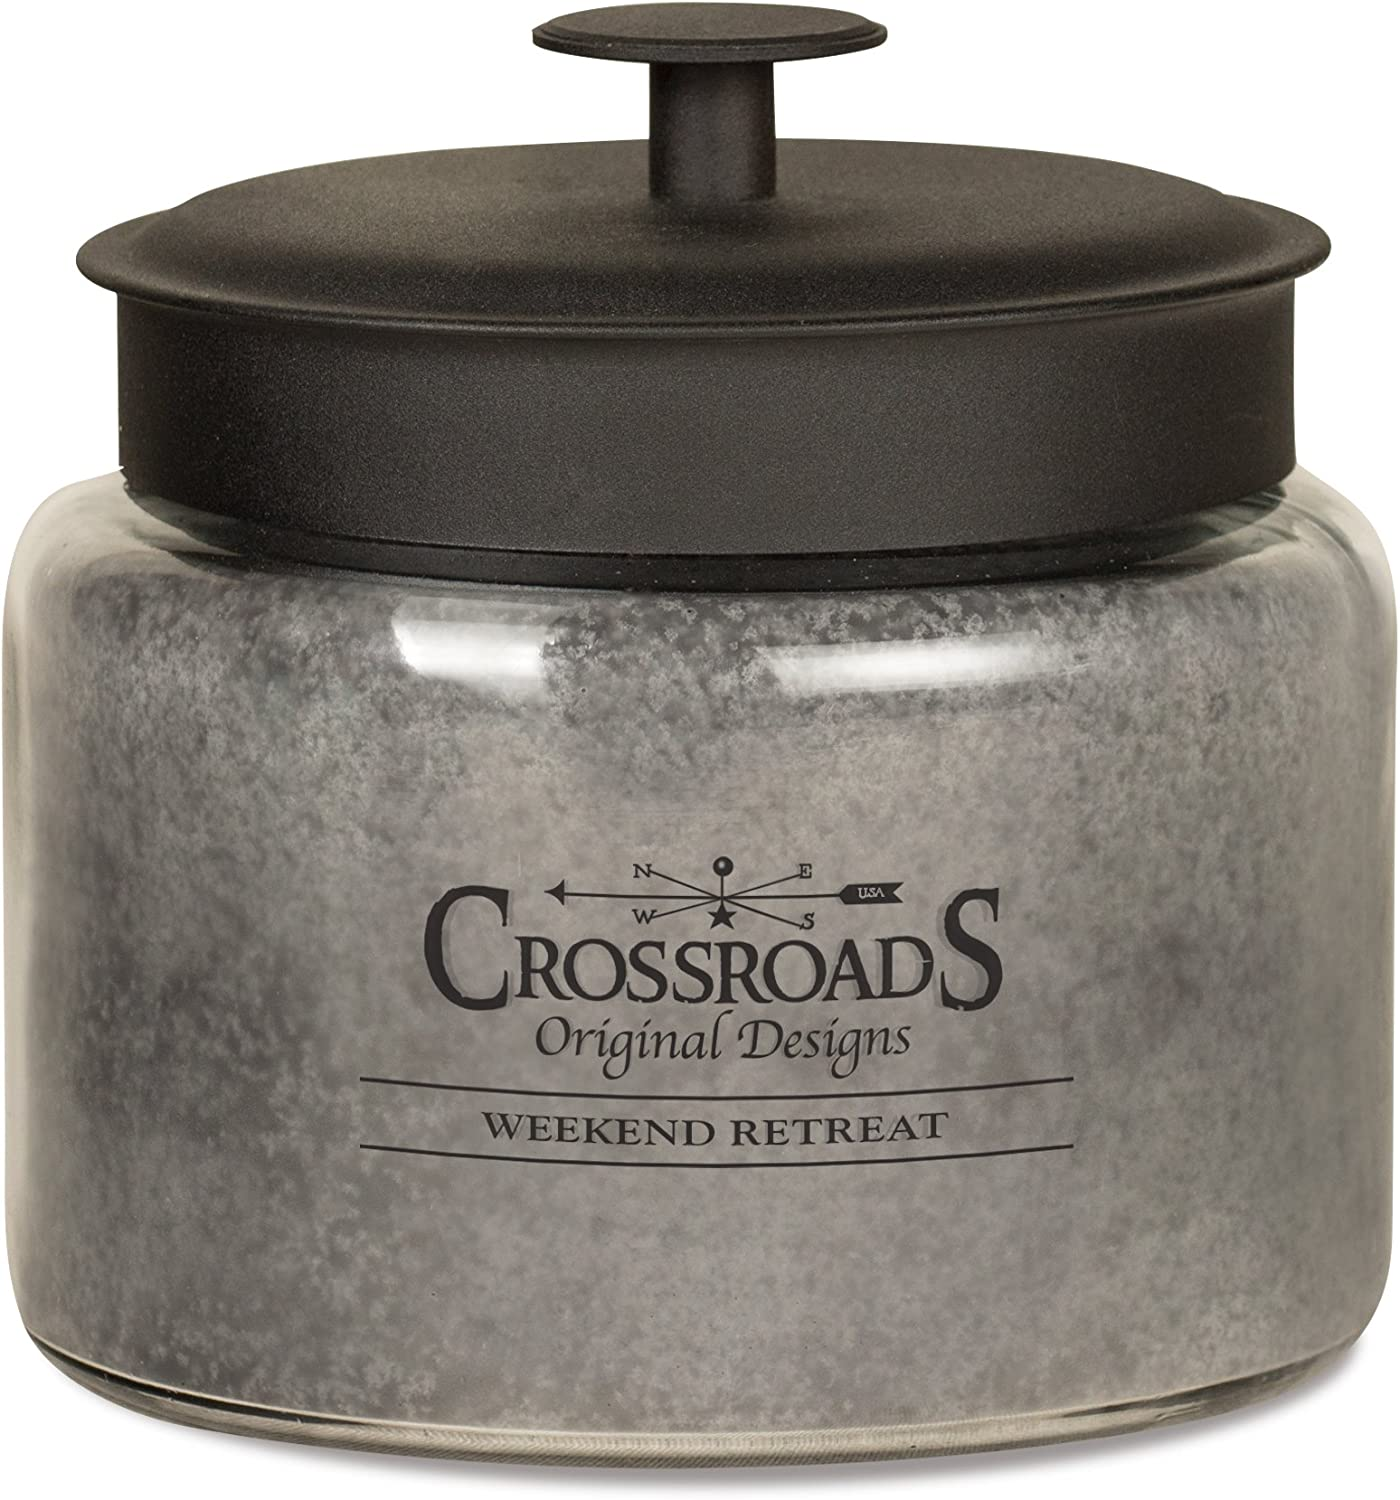 At the price Max 52% OFF of surprise Crossroads Weekend Retreat Scented 4-Wick 64 Candle Ounce